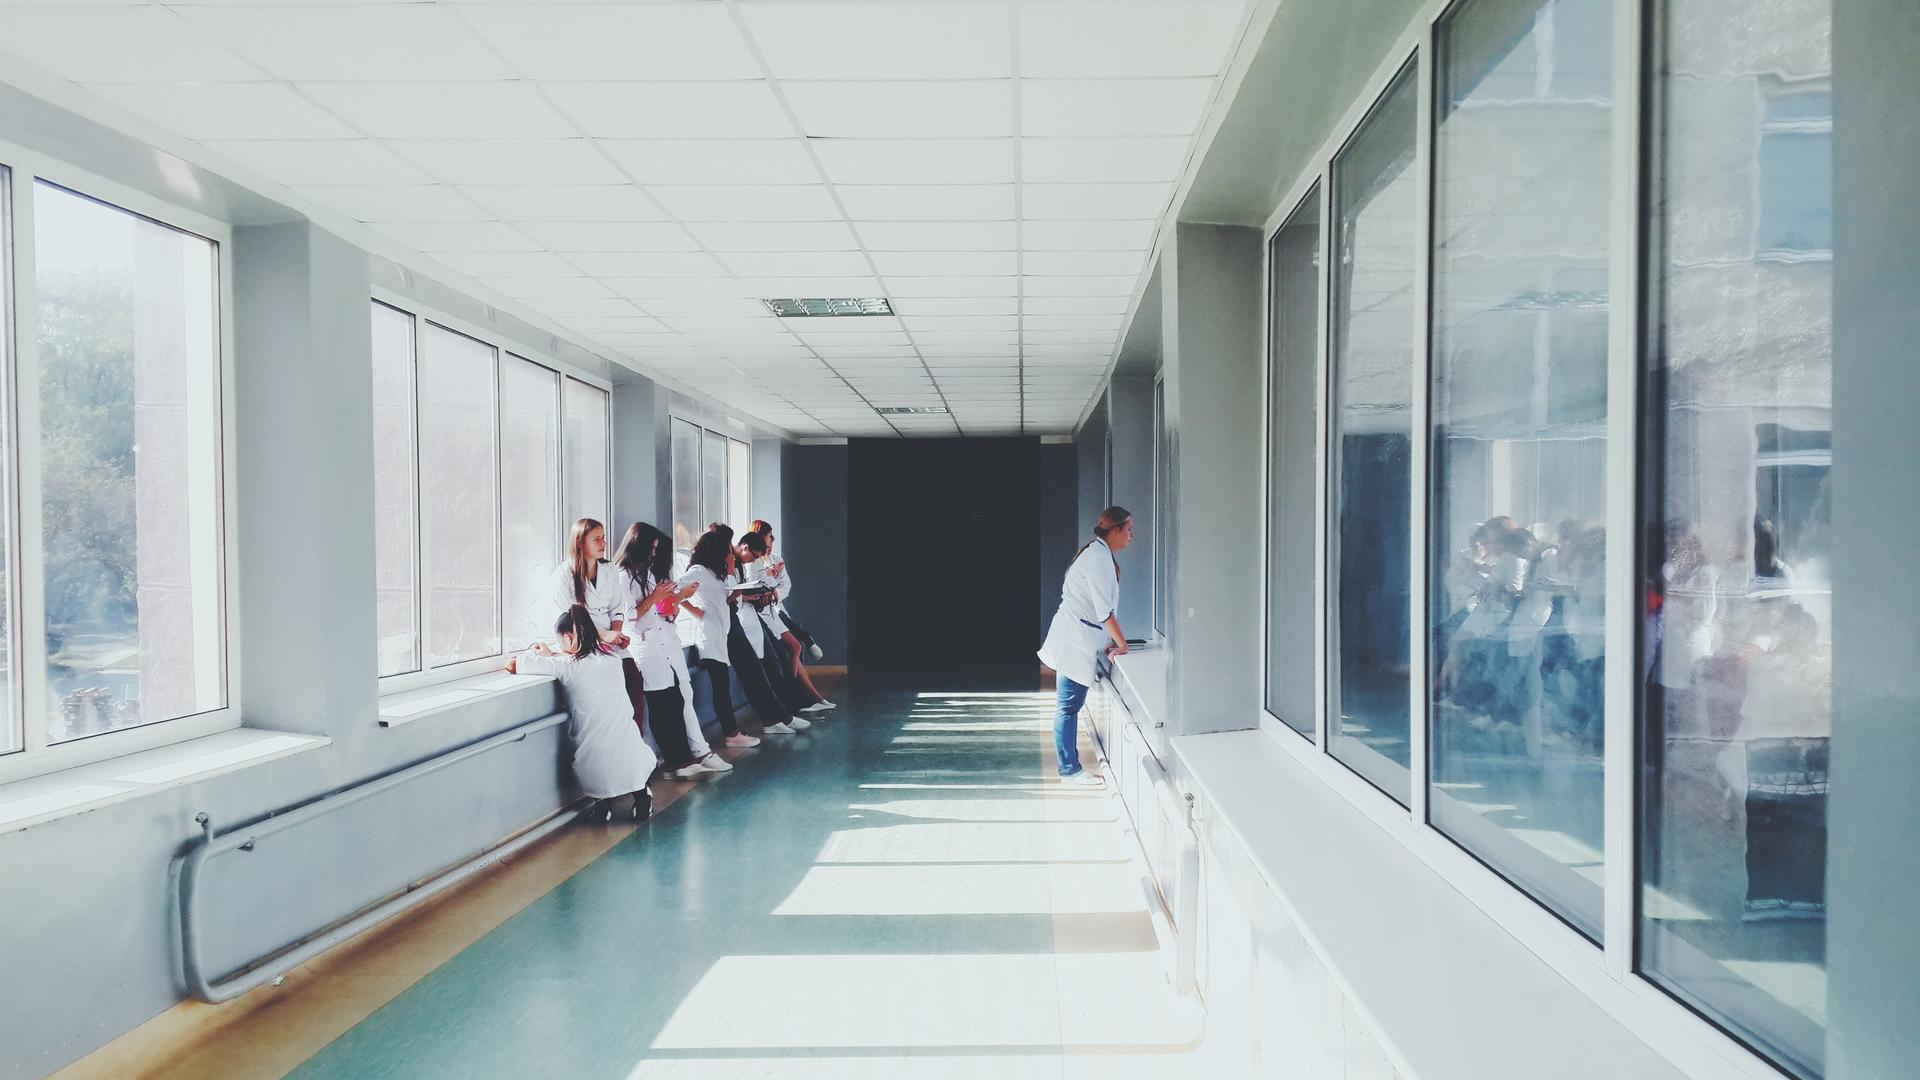 Hospital workers in a hallway